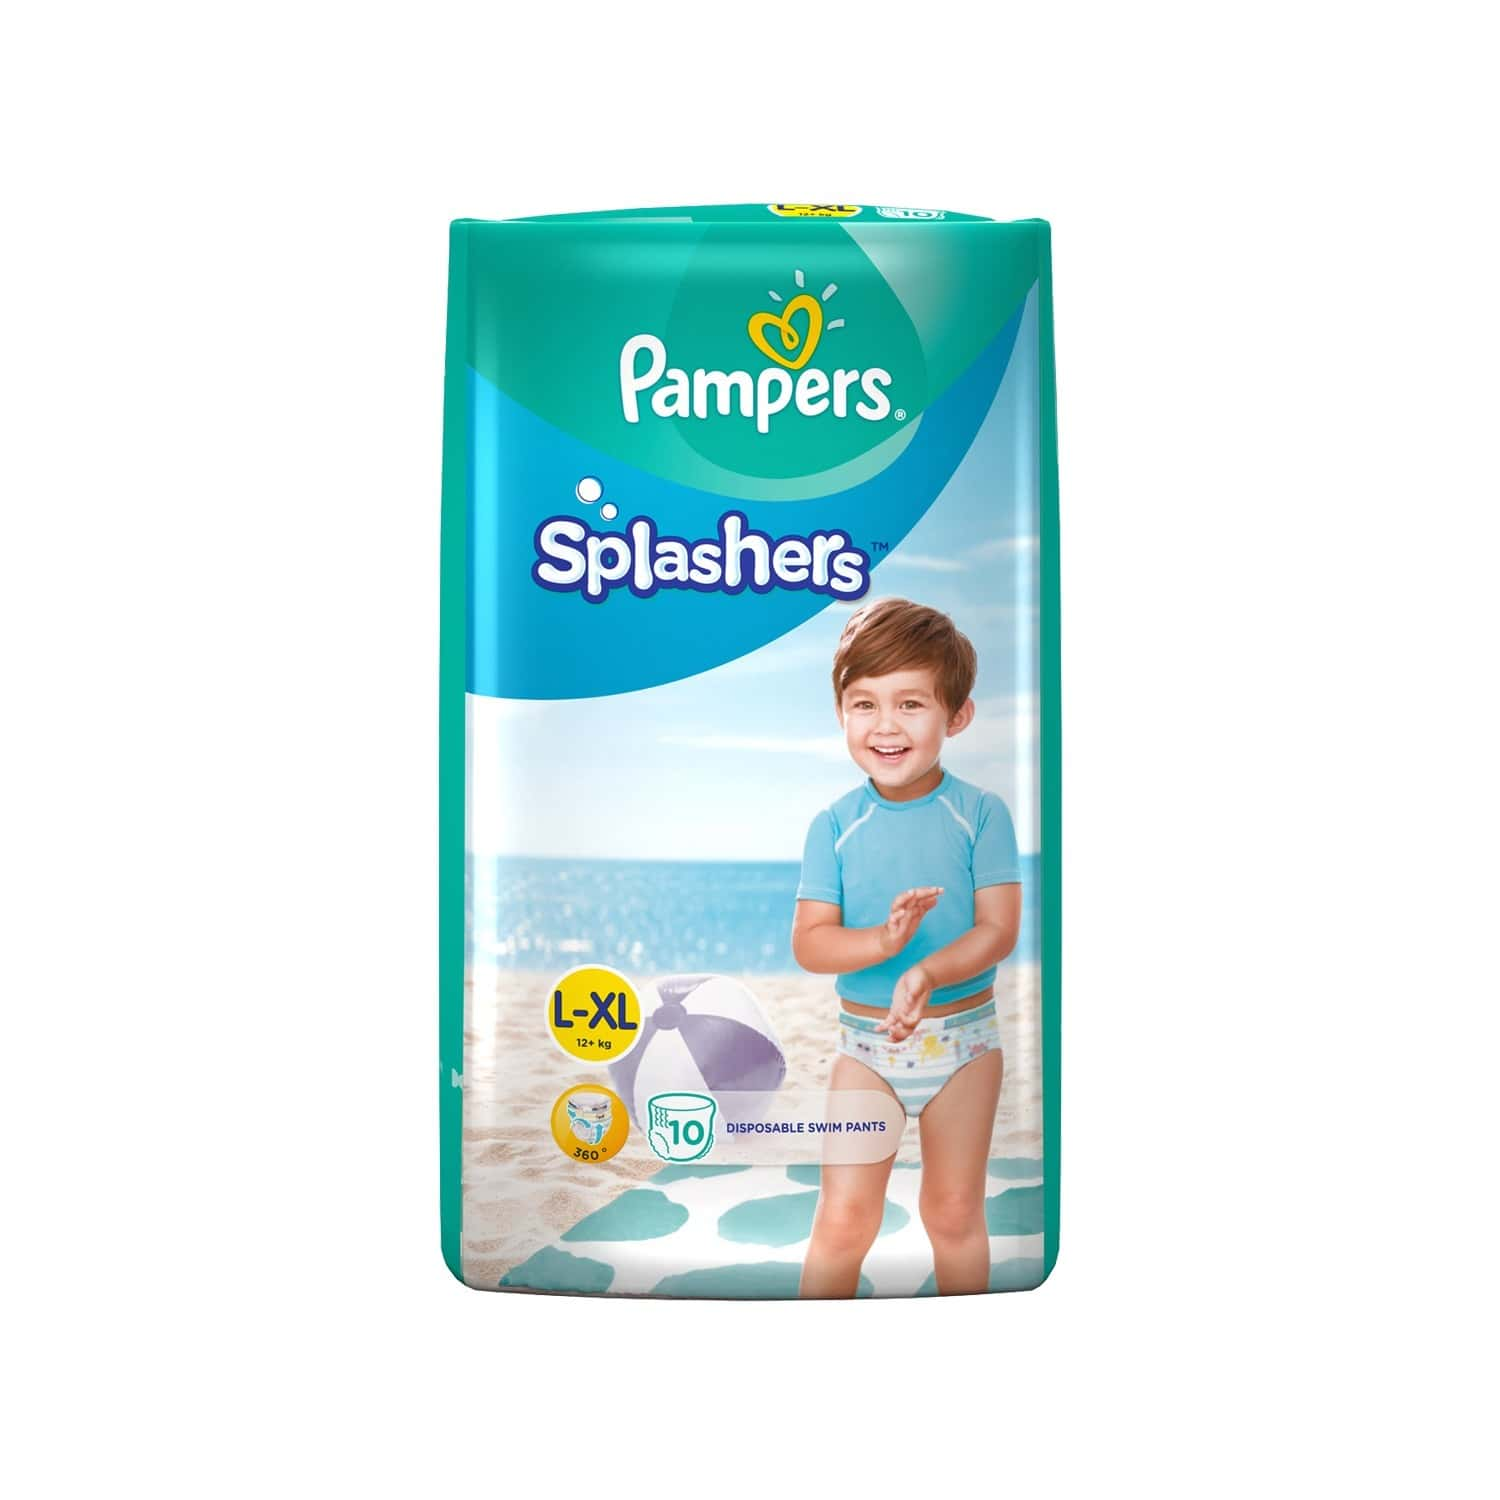 Pampers Splashers Disposable Swim Pants Diaper Size Xl Packet Of 10